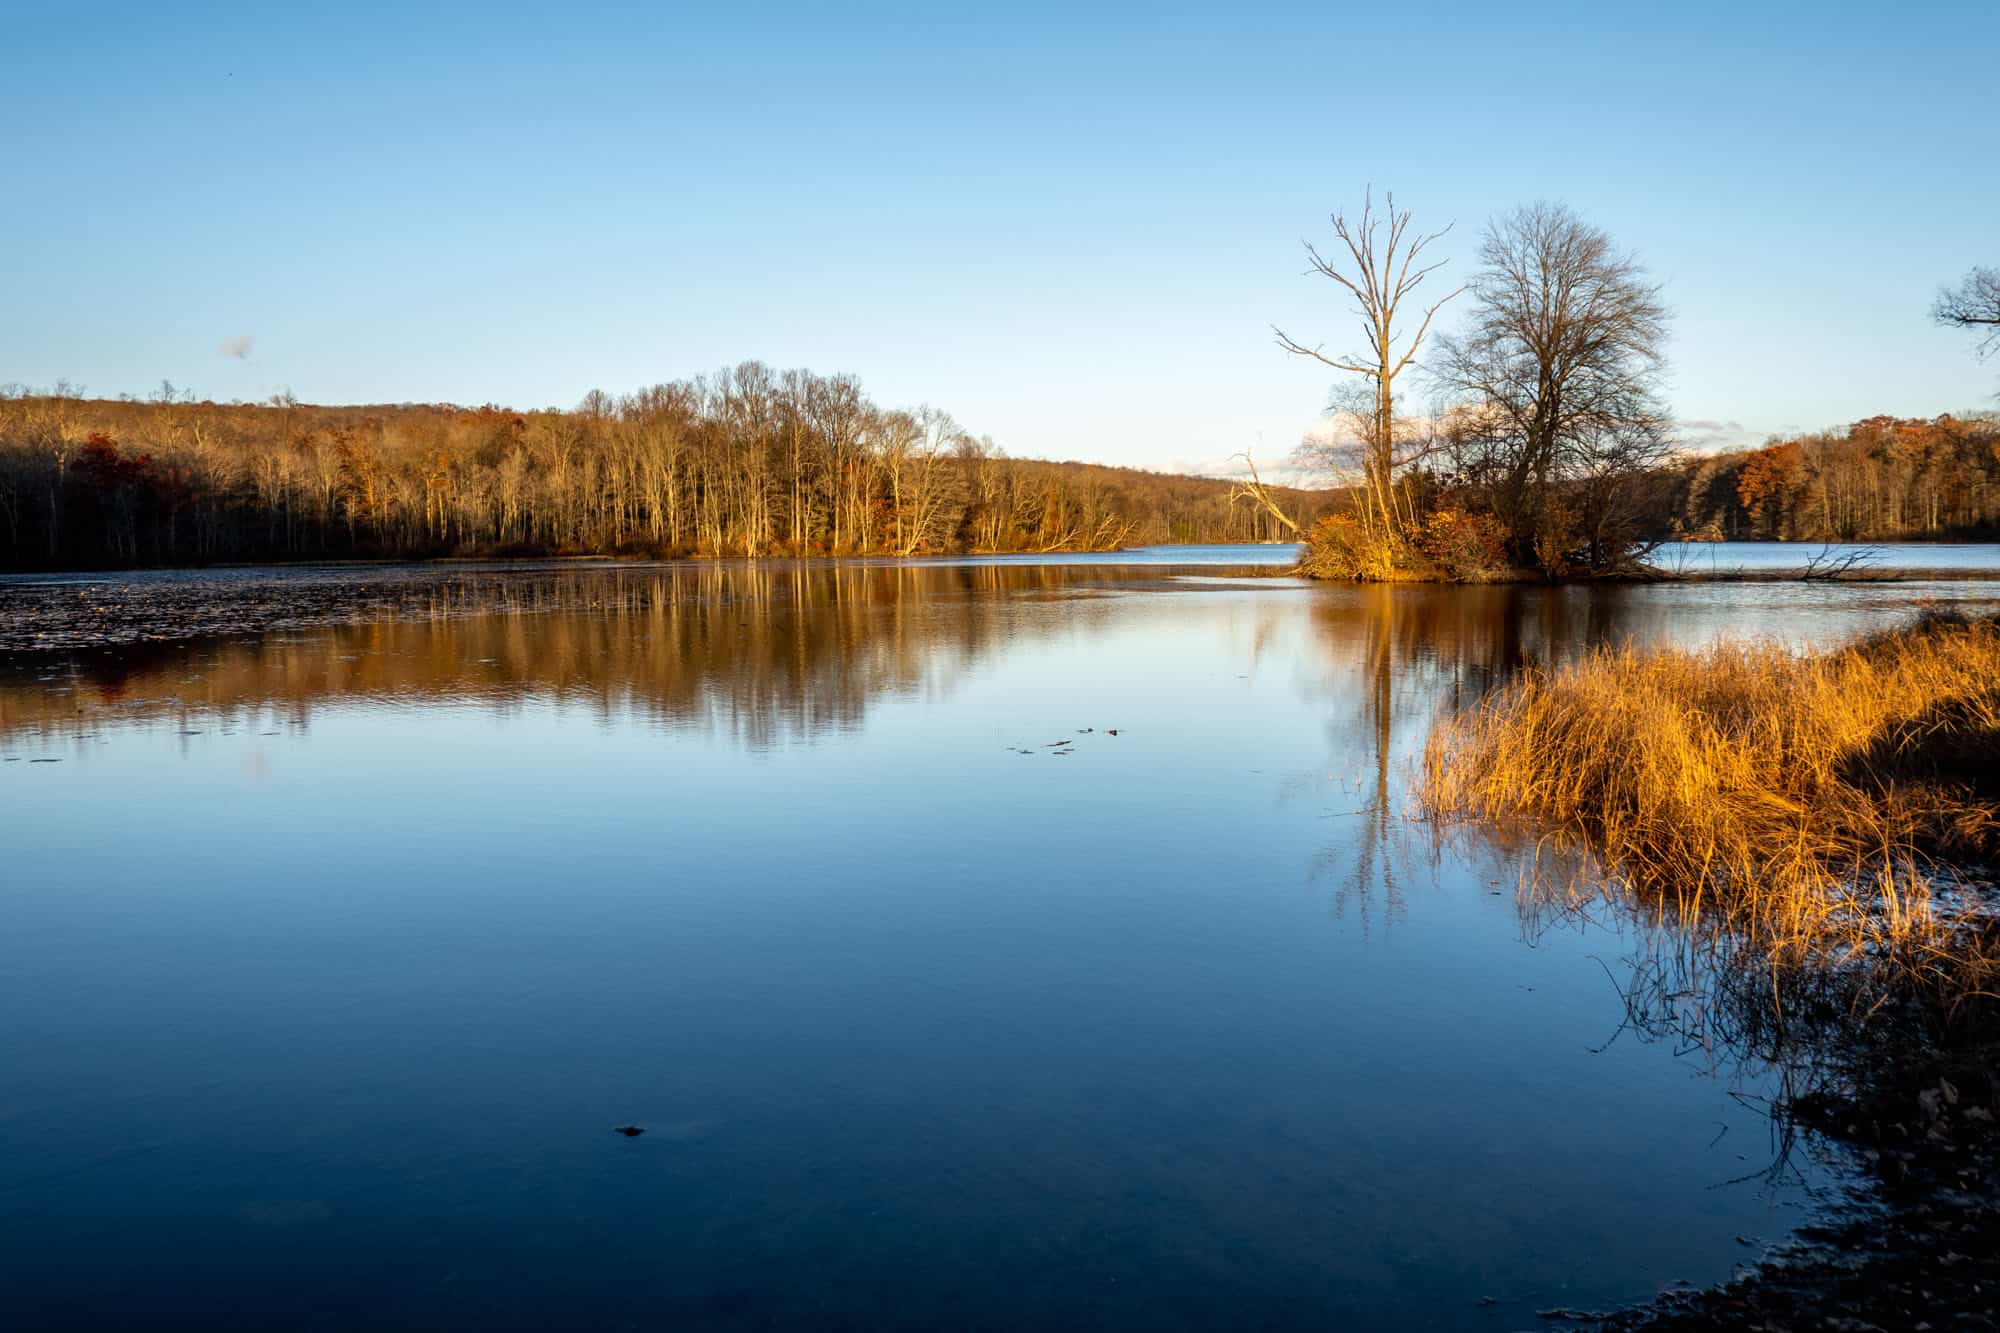 Lake in the winter with barren trees